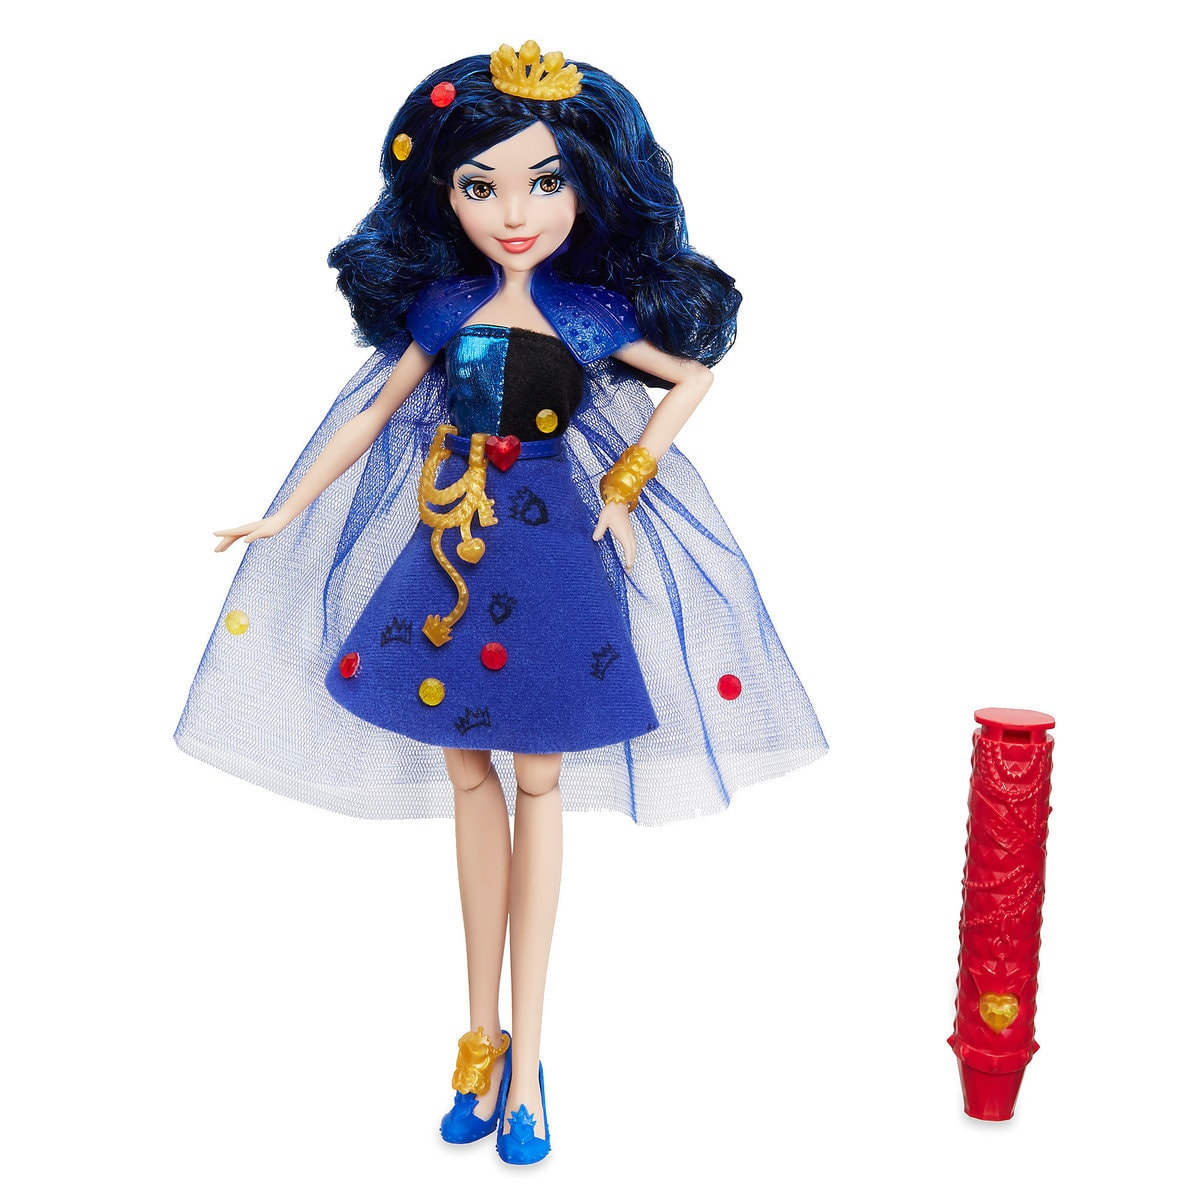 Disney Descendants Doll Evie The Latest Fashion Dolls & Bears Dolls